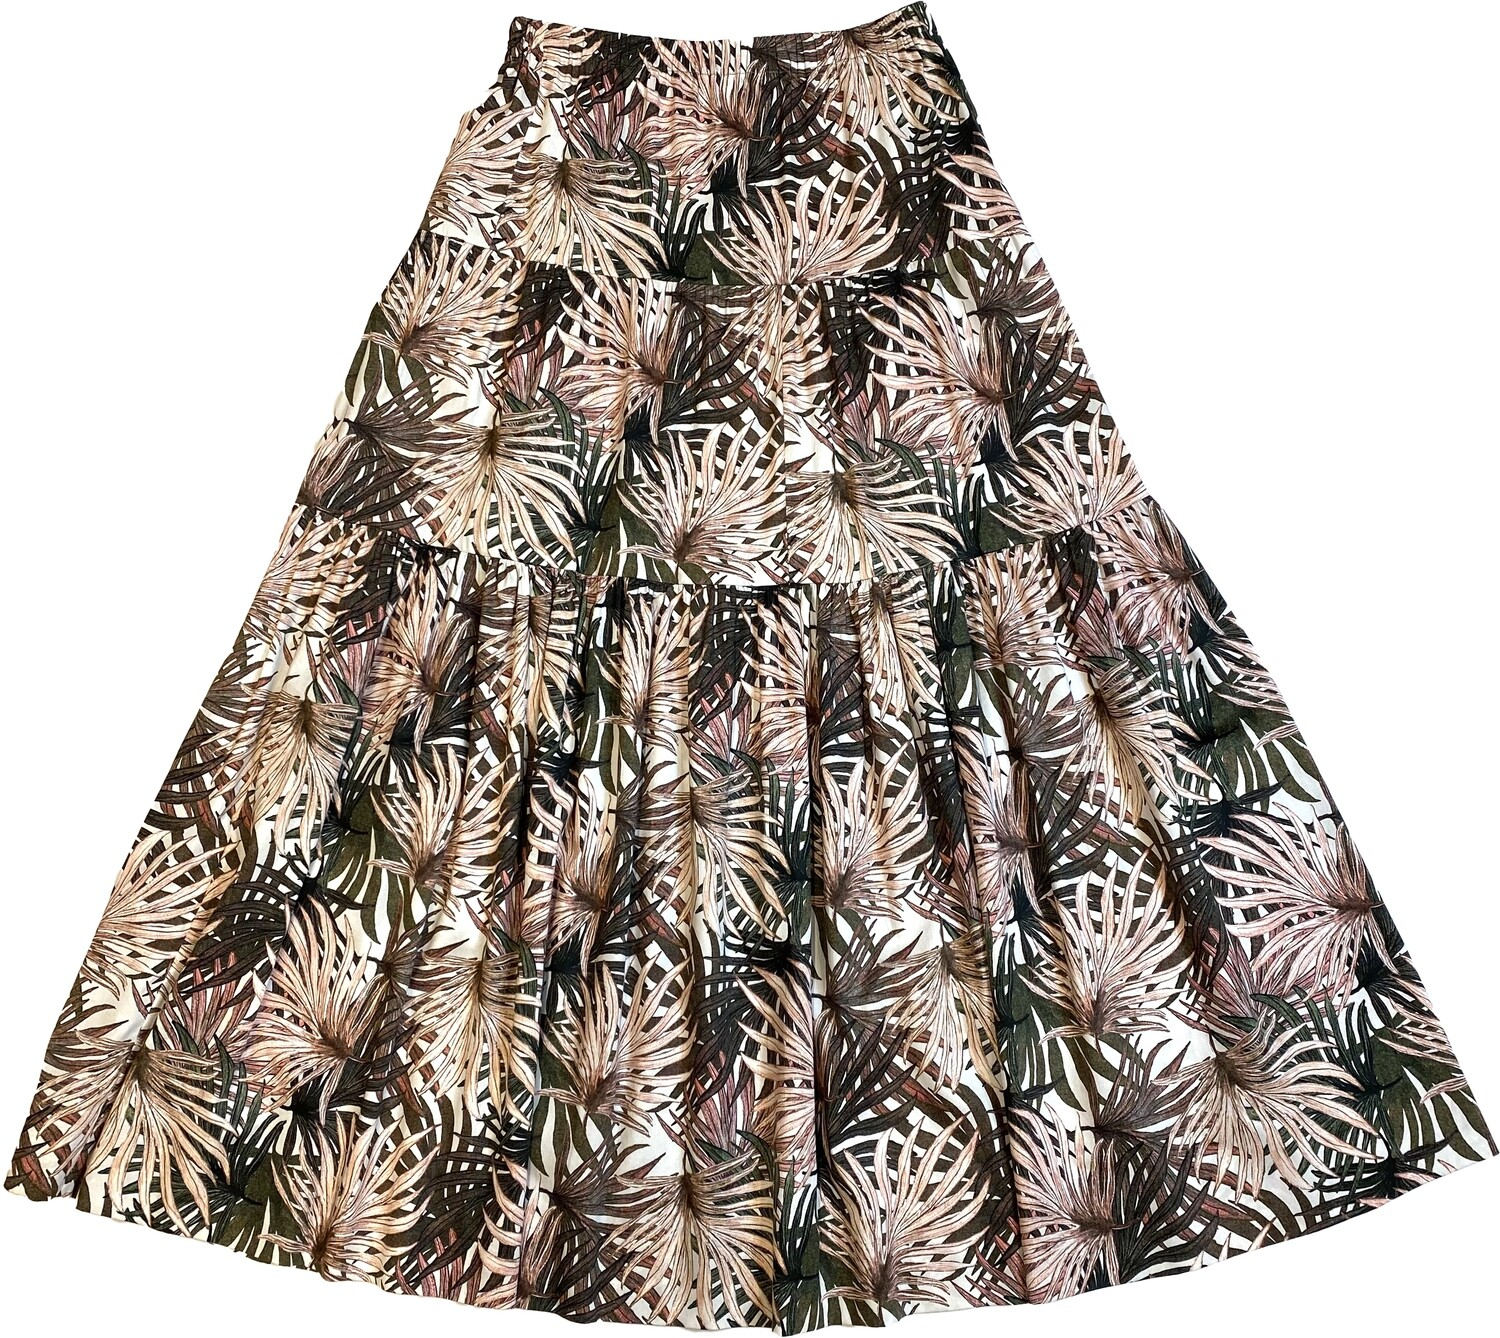 Limited Edition Skirt 100% Cotton palme GONNA